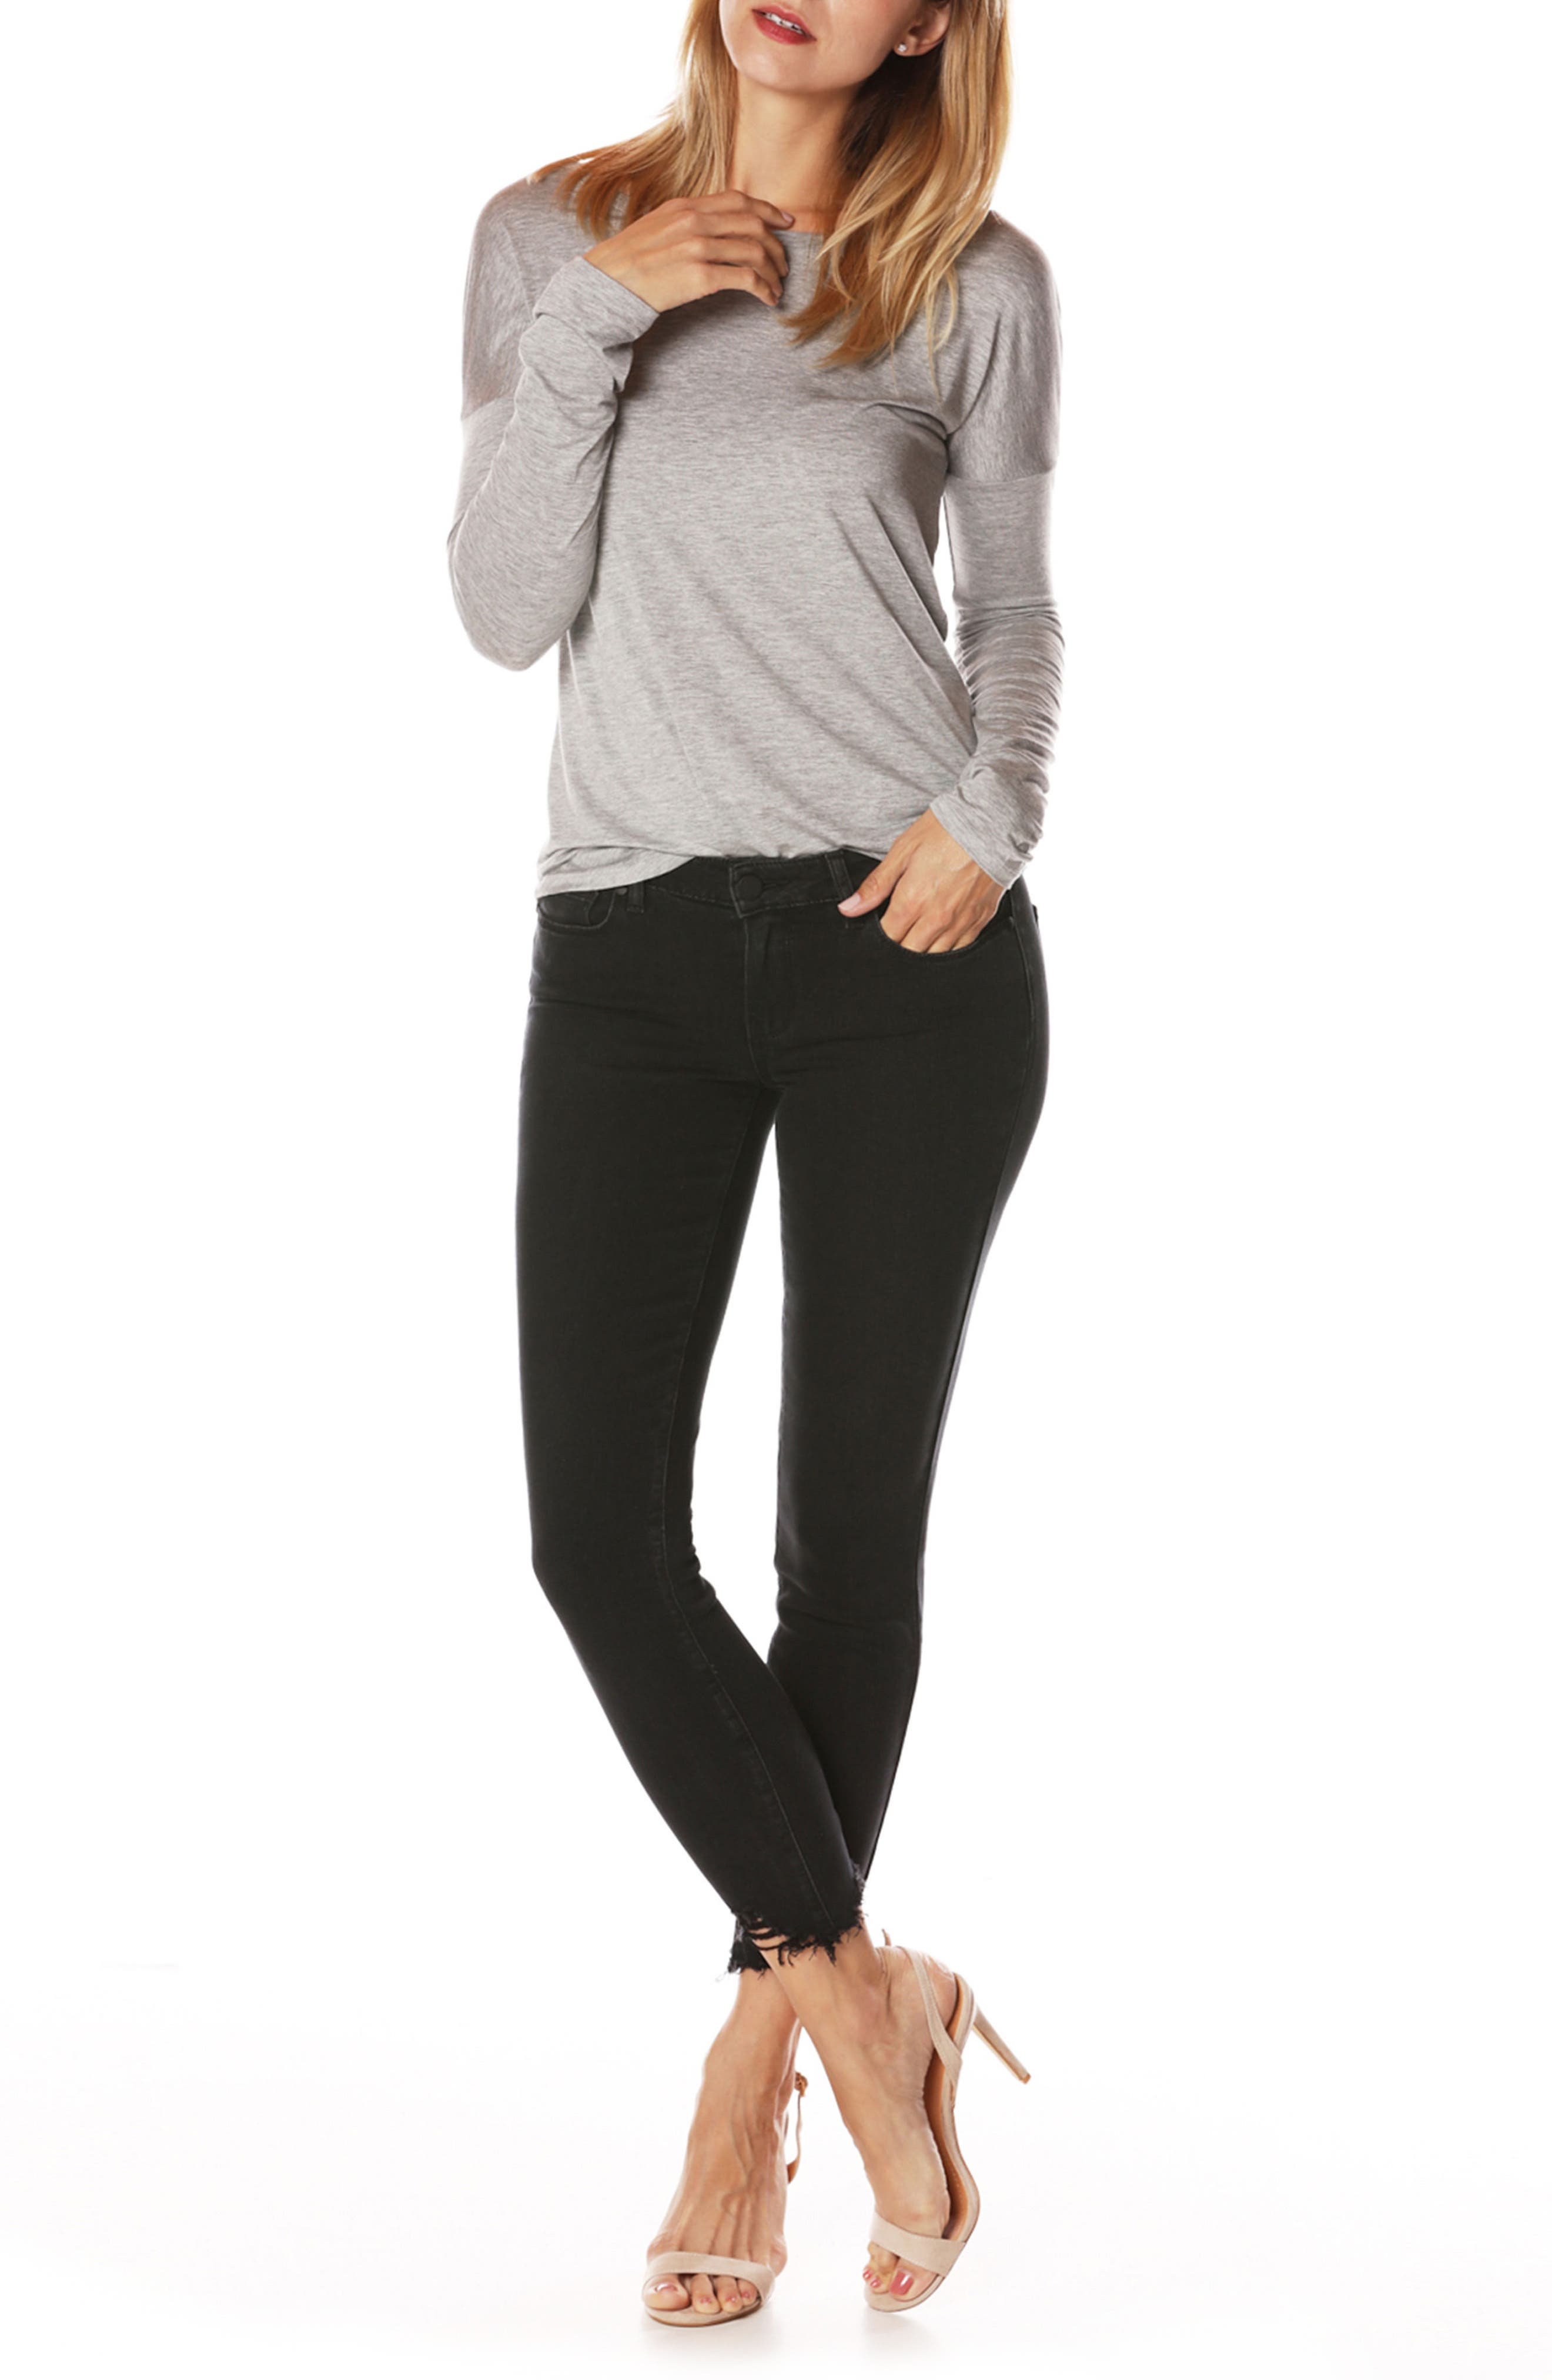 PAIGE, Transcend - Verdugo Ankle Skinny Jeans, Alternate thumbnail 8, color, 001